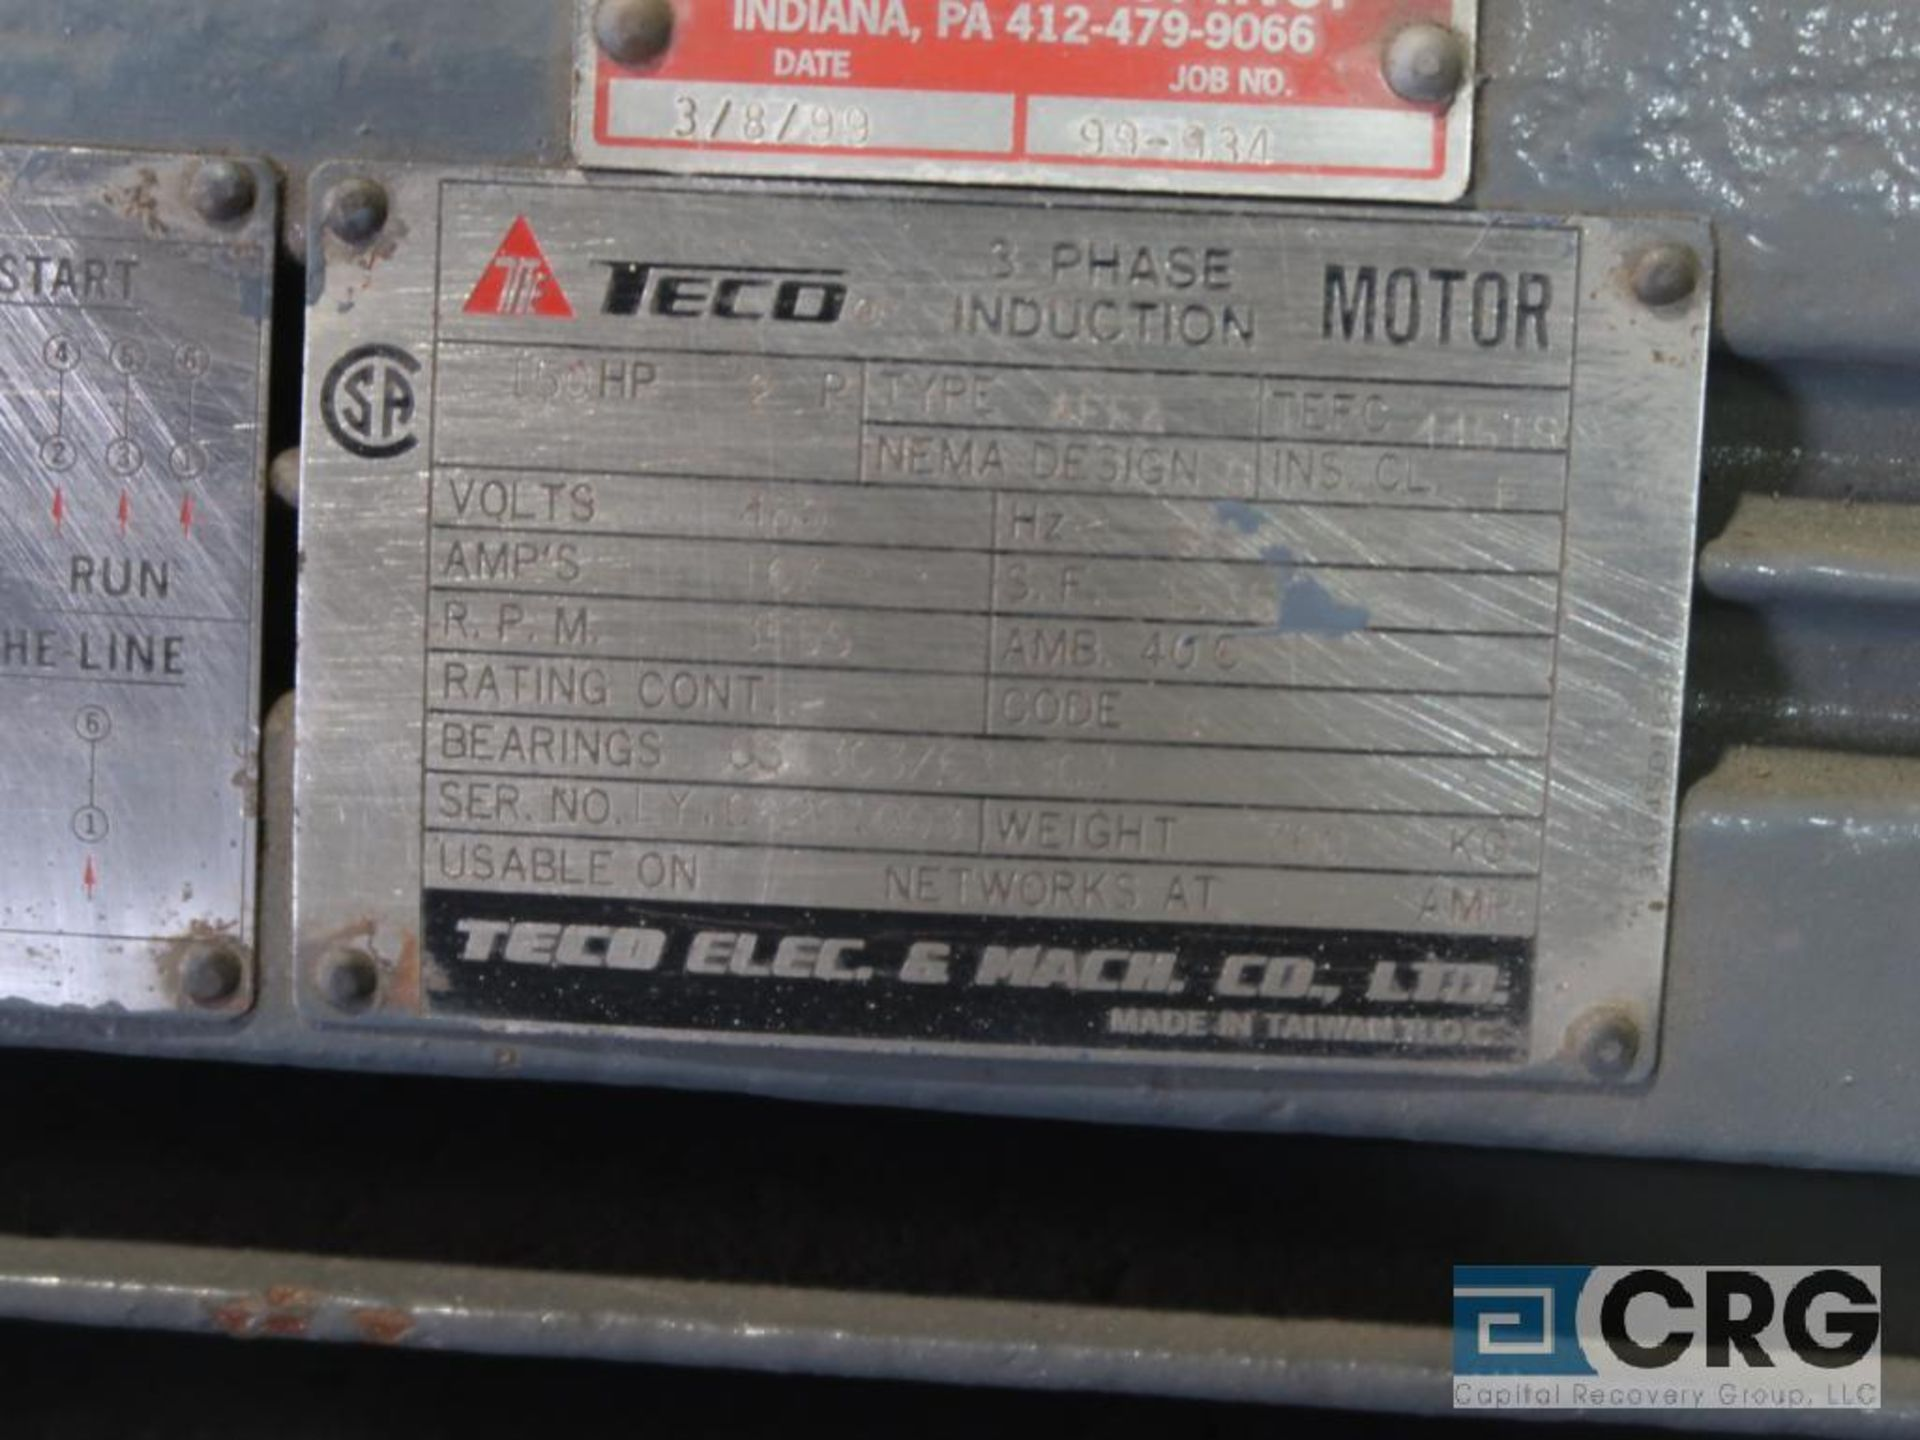 Teco-Electric induction motor, 150 HP, 3,555 RPMs, 460 volt, 3 ph., 445 TS frame (Finish Building) - Image 2 of 2